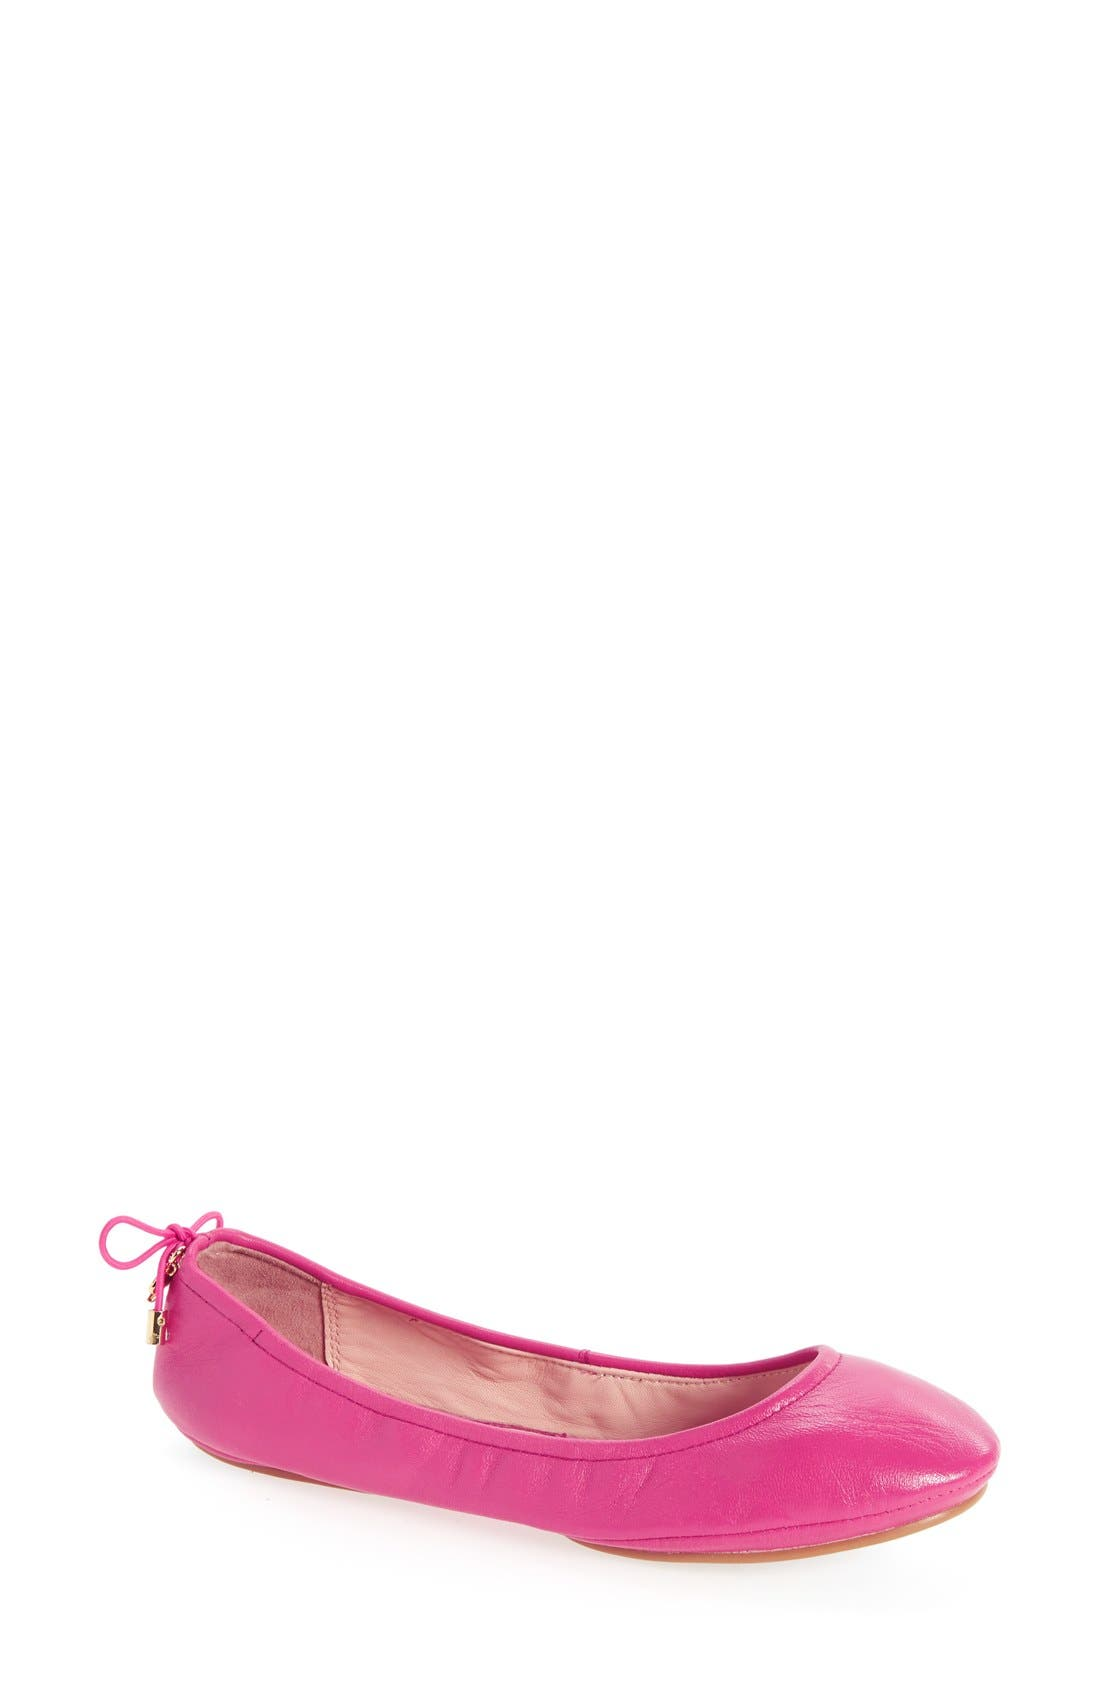 kate spade new york globe foldable ballet flat (Women)